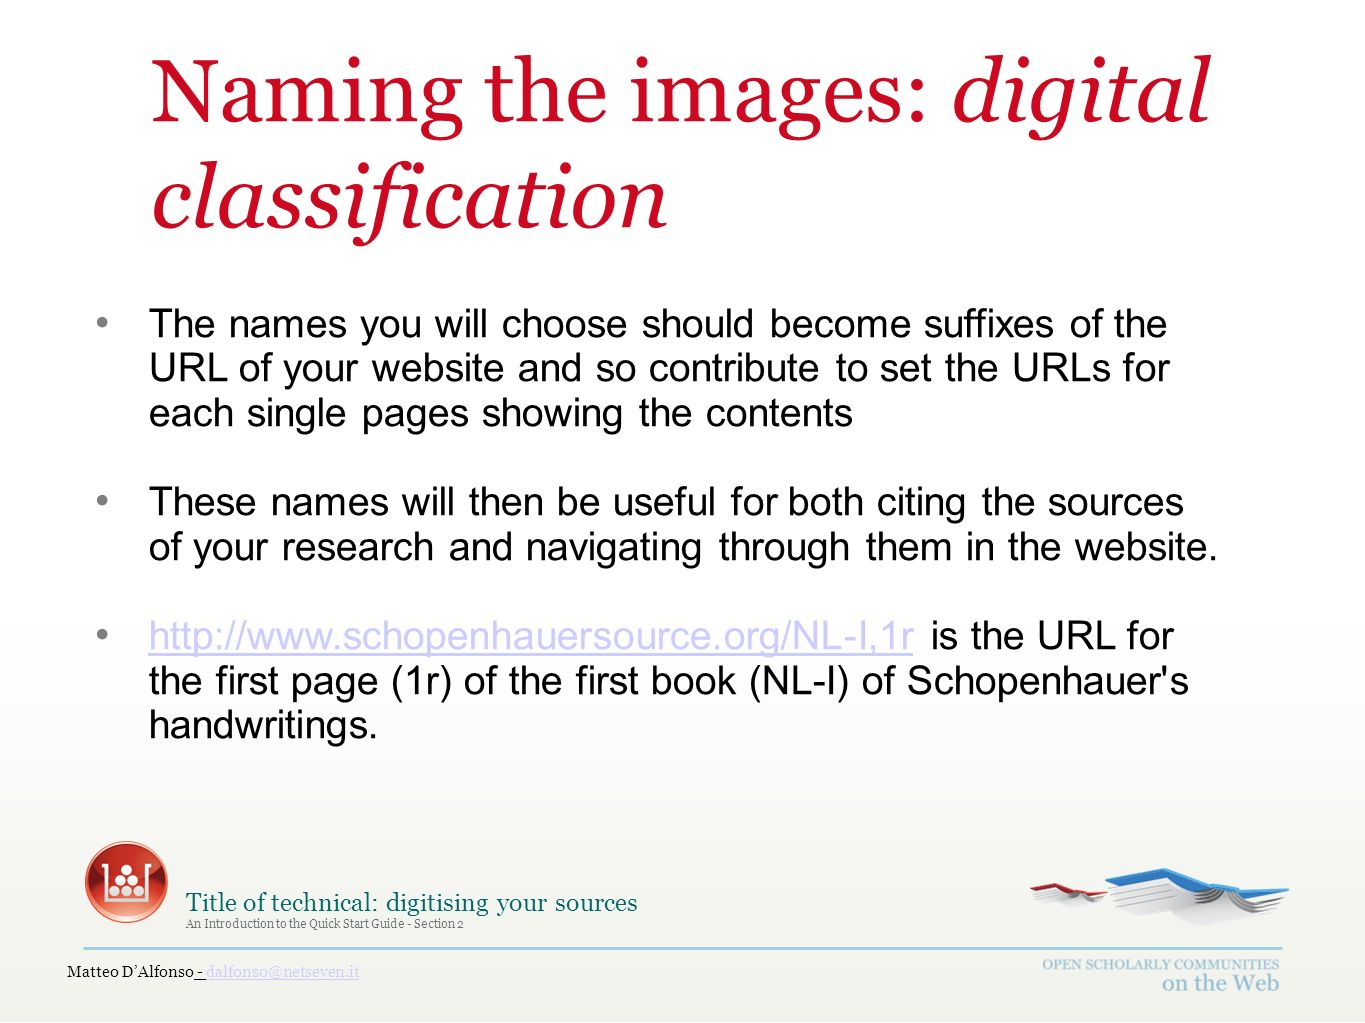 Matteo DAlfonso - dalfonso@netseven.itdalfonso@netseven.it Title of technical: digitising your sources An Introduction to the Quick Start Guide - Section 2 Naming the images: digital classification The names you will choose should become suffixes of the URL of your website and so contribute to set the URLs for each single pages showing the contents These names will then be useful for both citing the sources of your research and navigating through them in the website.